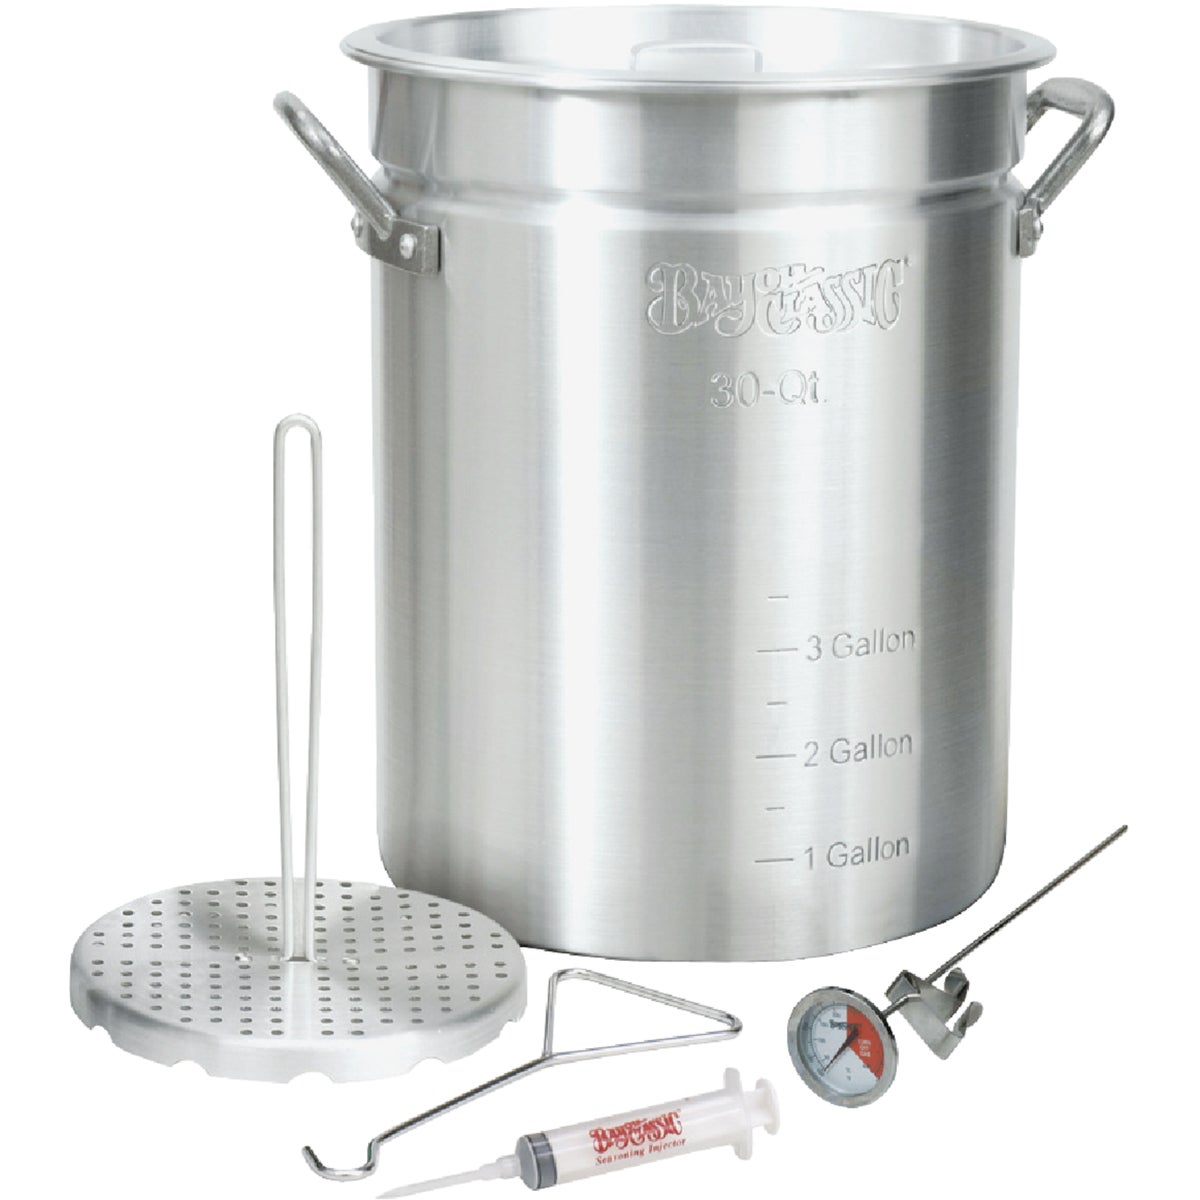 30QT TURKEY FRYER POT - 3025 by Barbour Intl